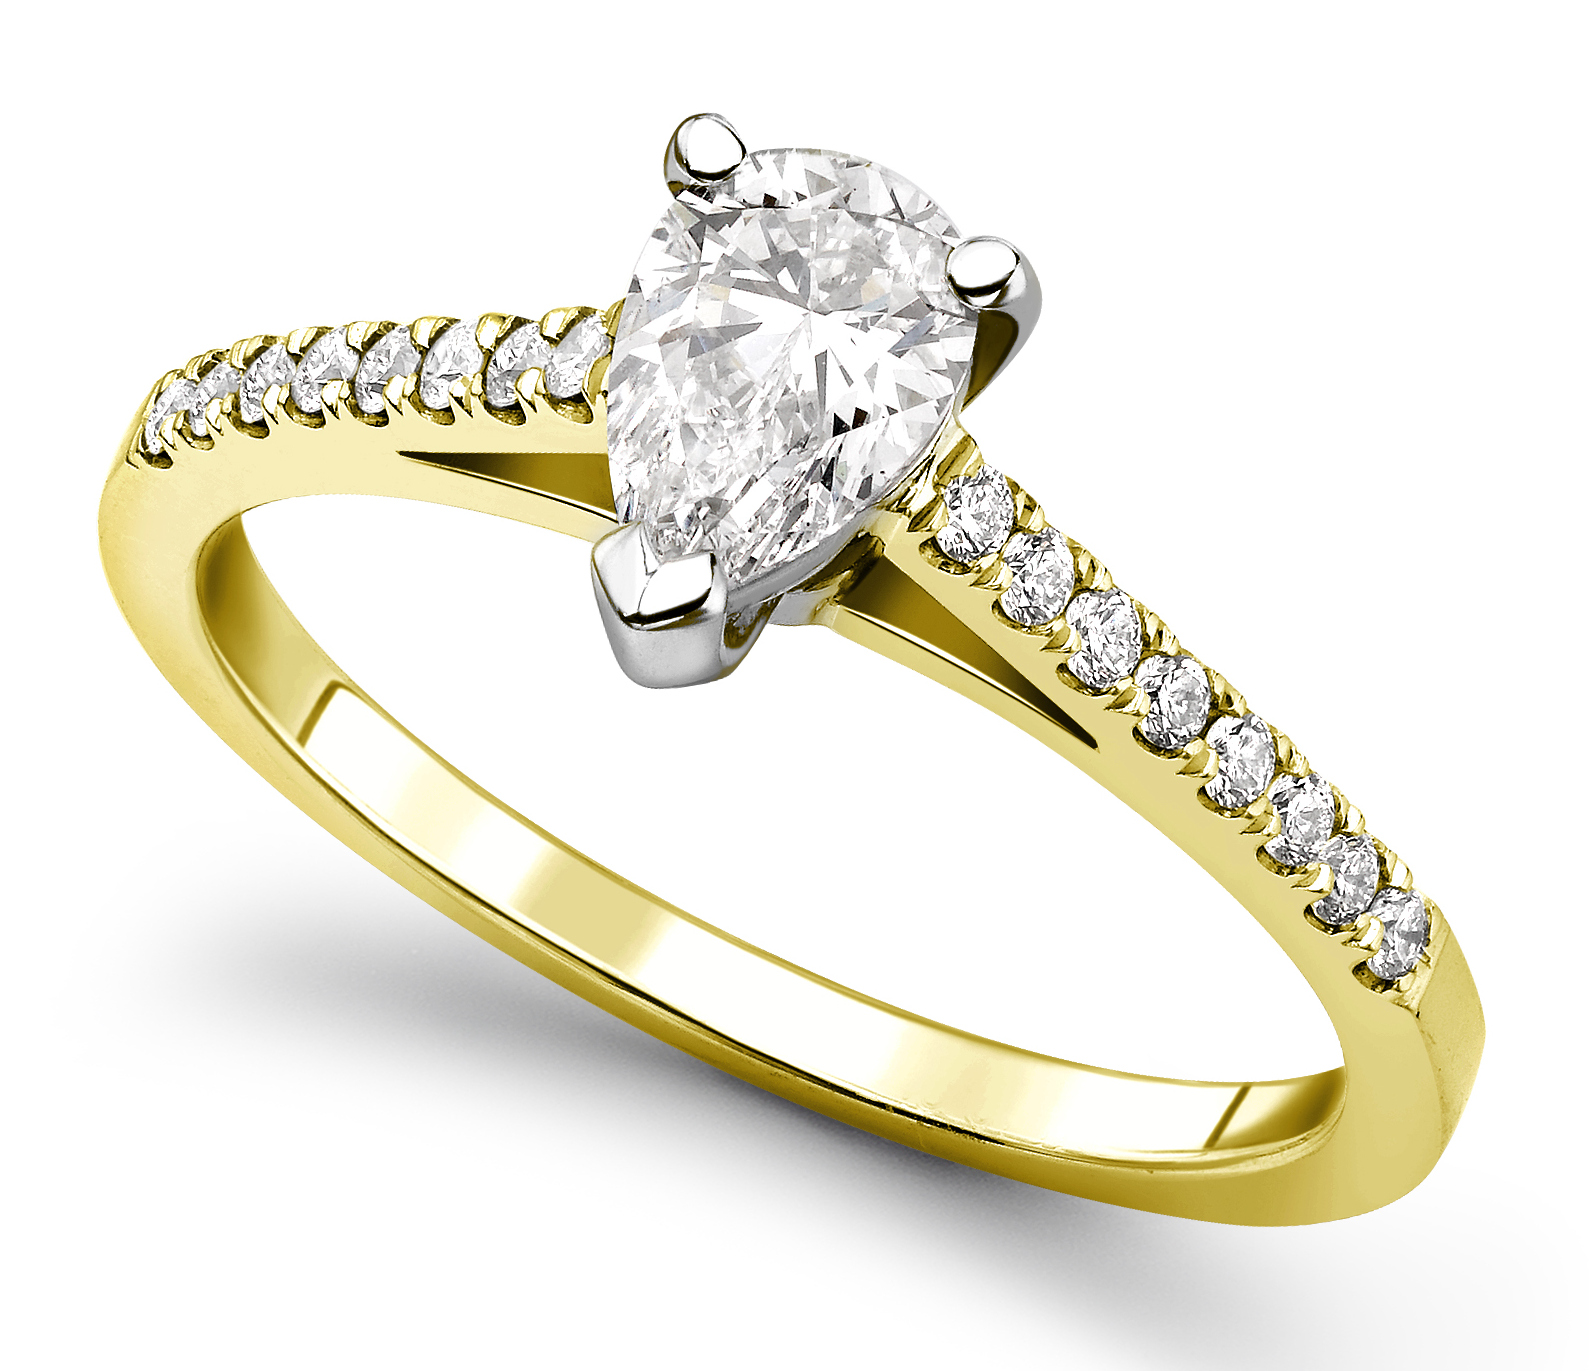 Pear Shape 3 Claw Yellow Gold Diamond Engagement Ring CRC698YG Main Image